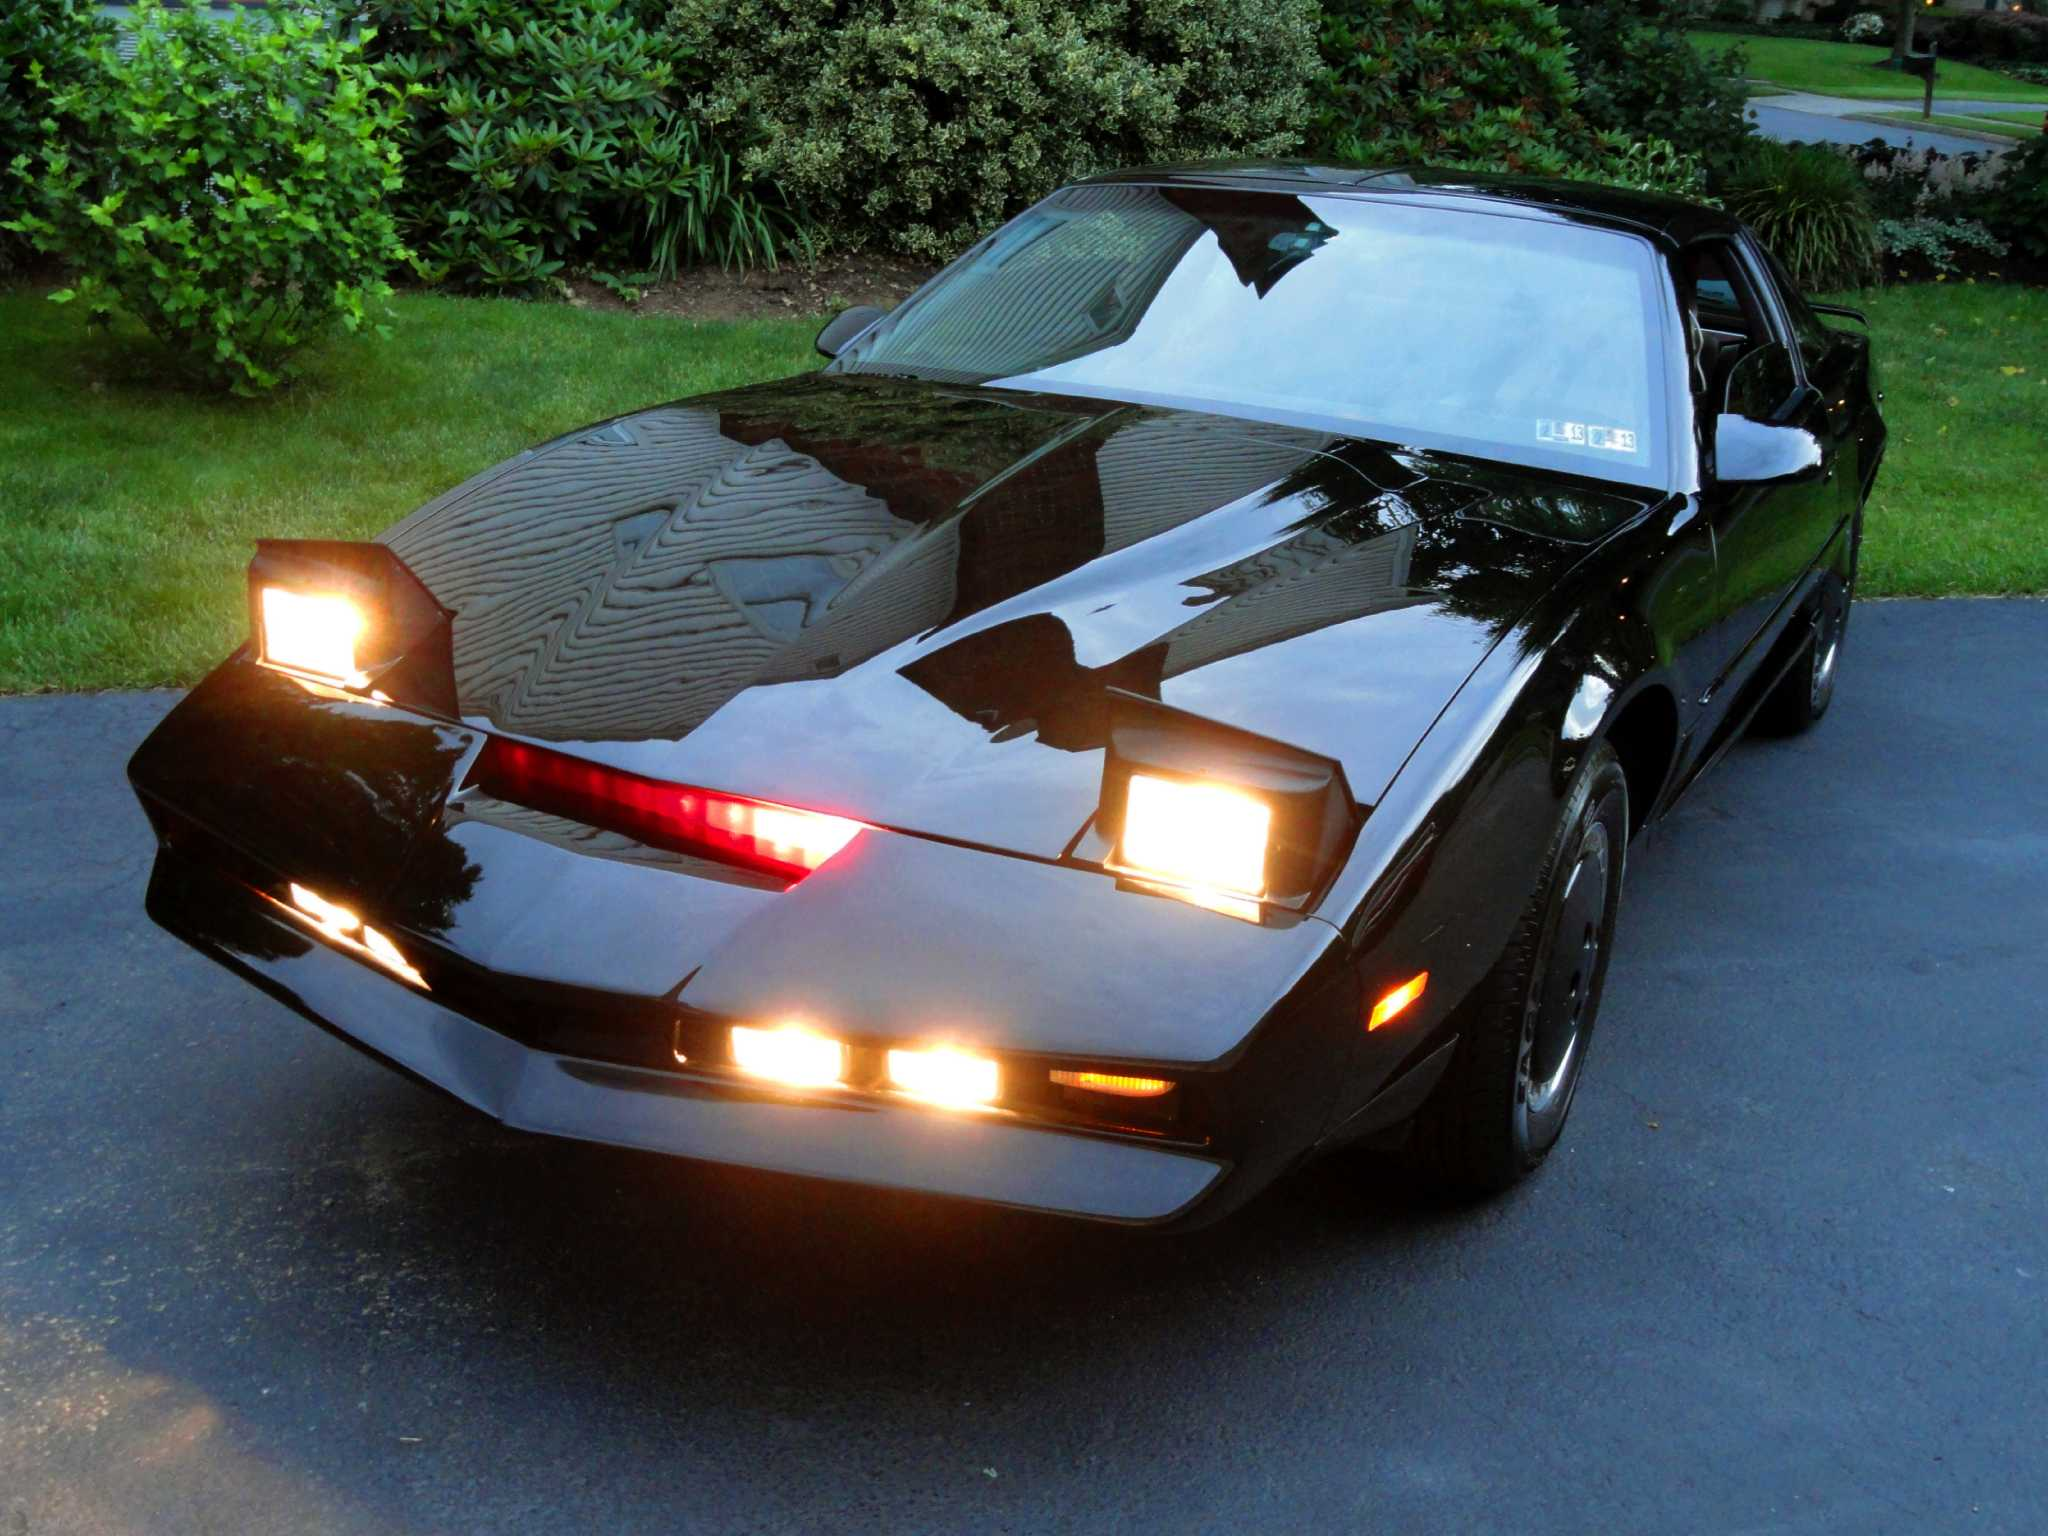 Replica Knight Rider Car Up For On Craigslist